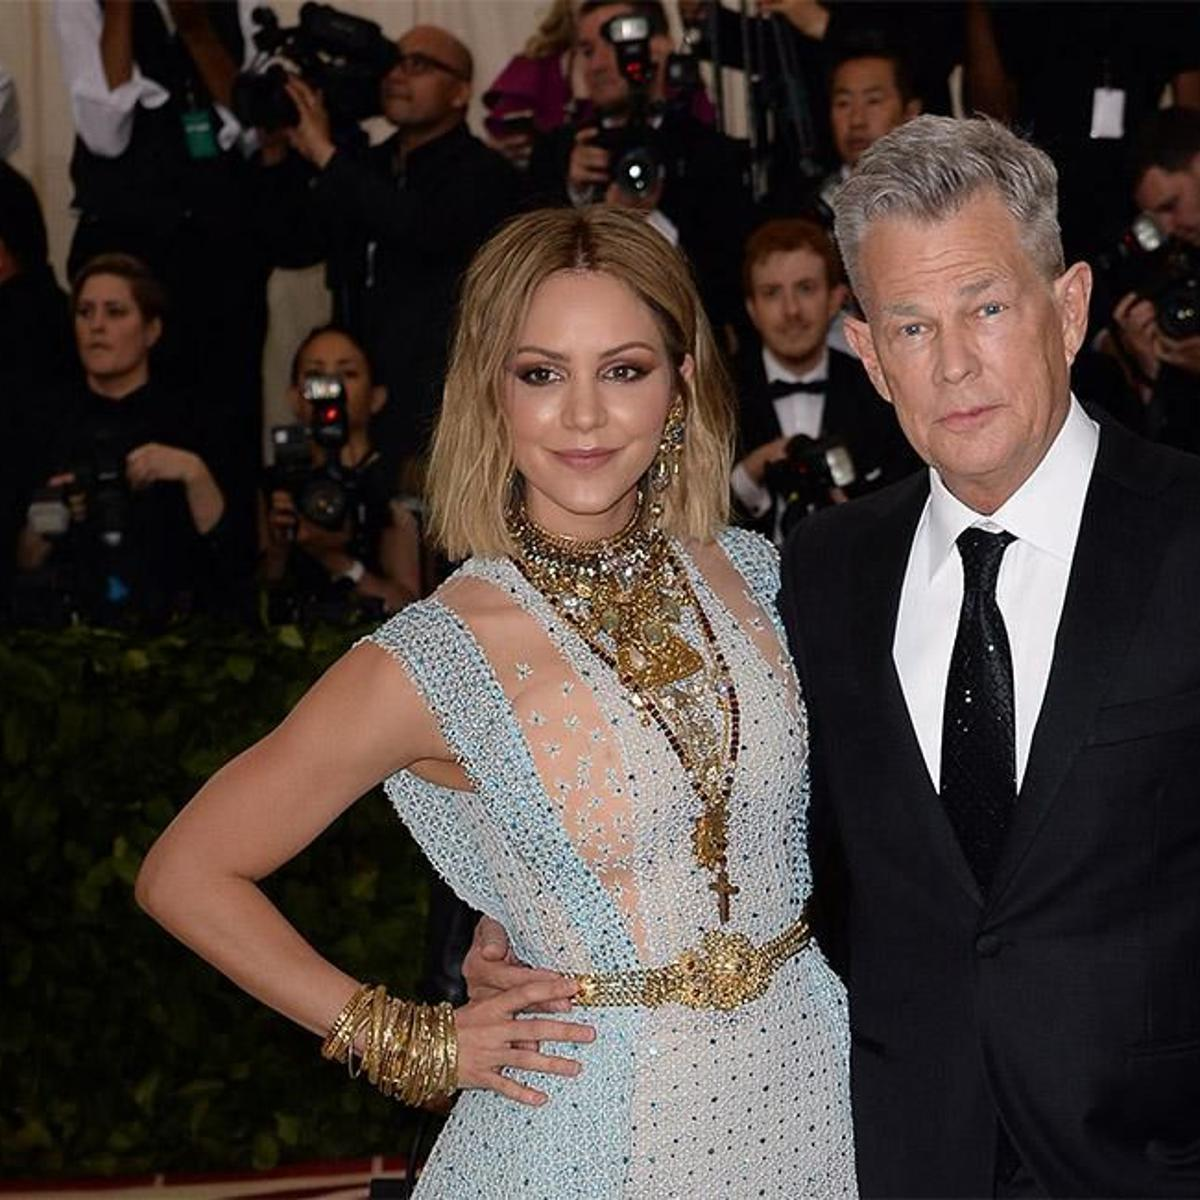 Katharine Mcphee Touring With Husband David Foster Celebrities Celebretainment Com